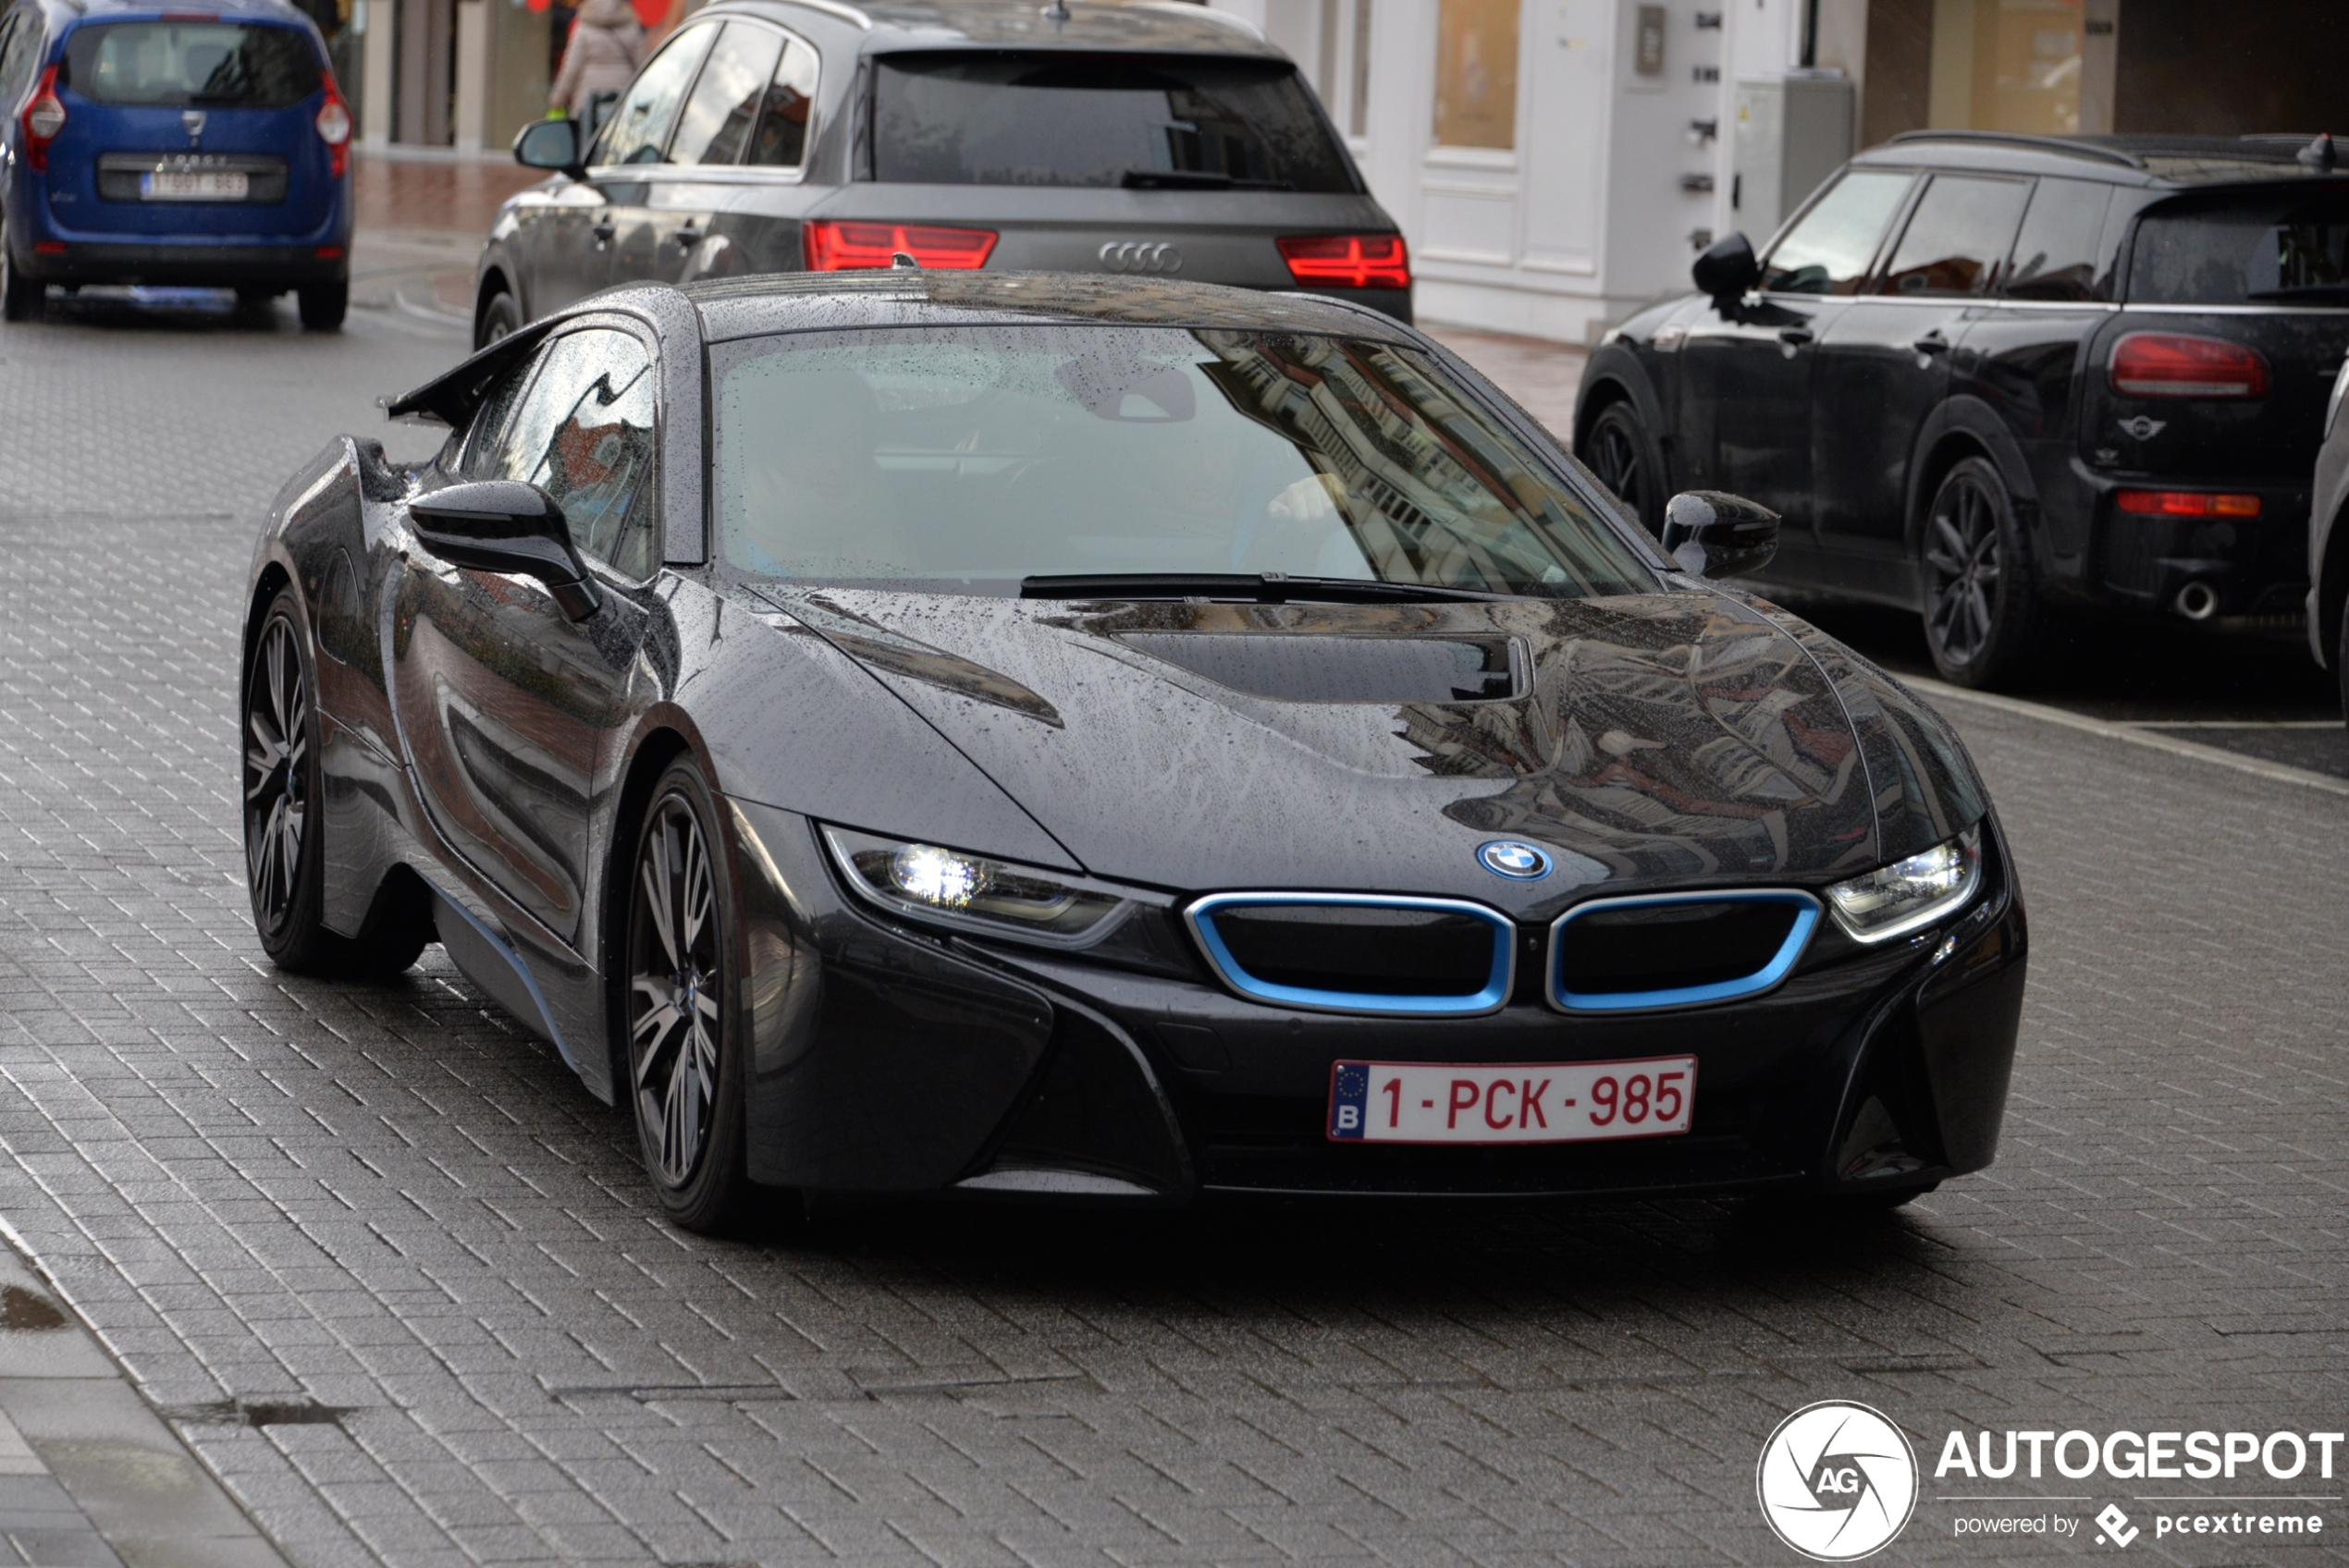 Is The BMW i8 A Genuine Exotic Car?